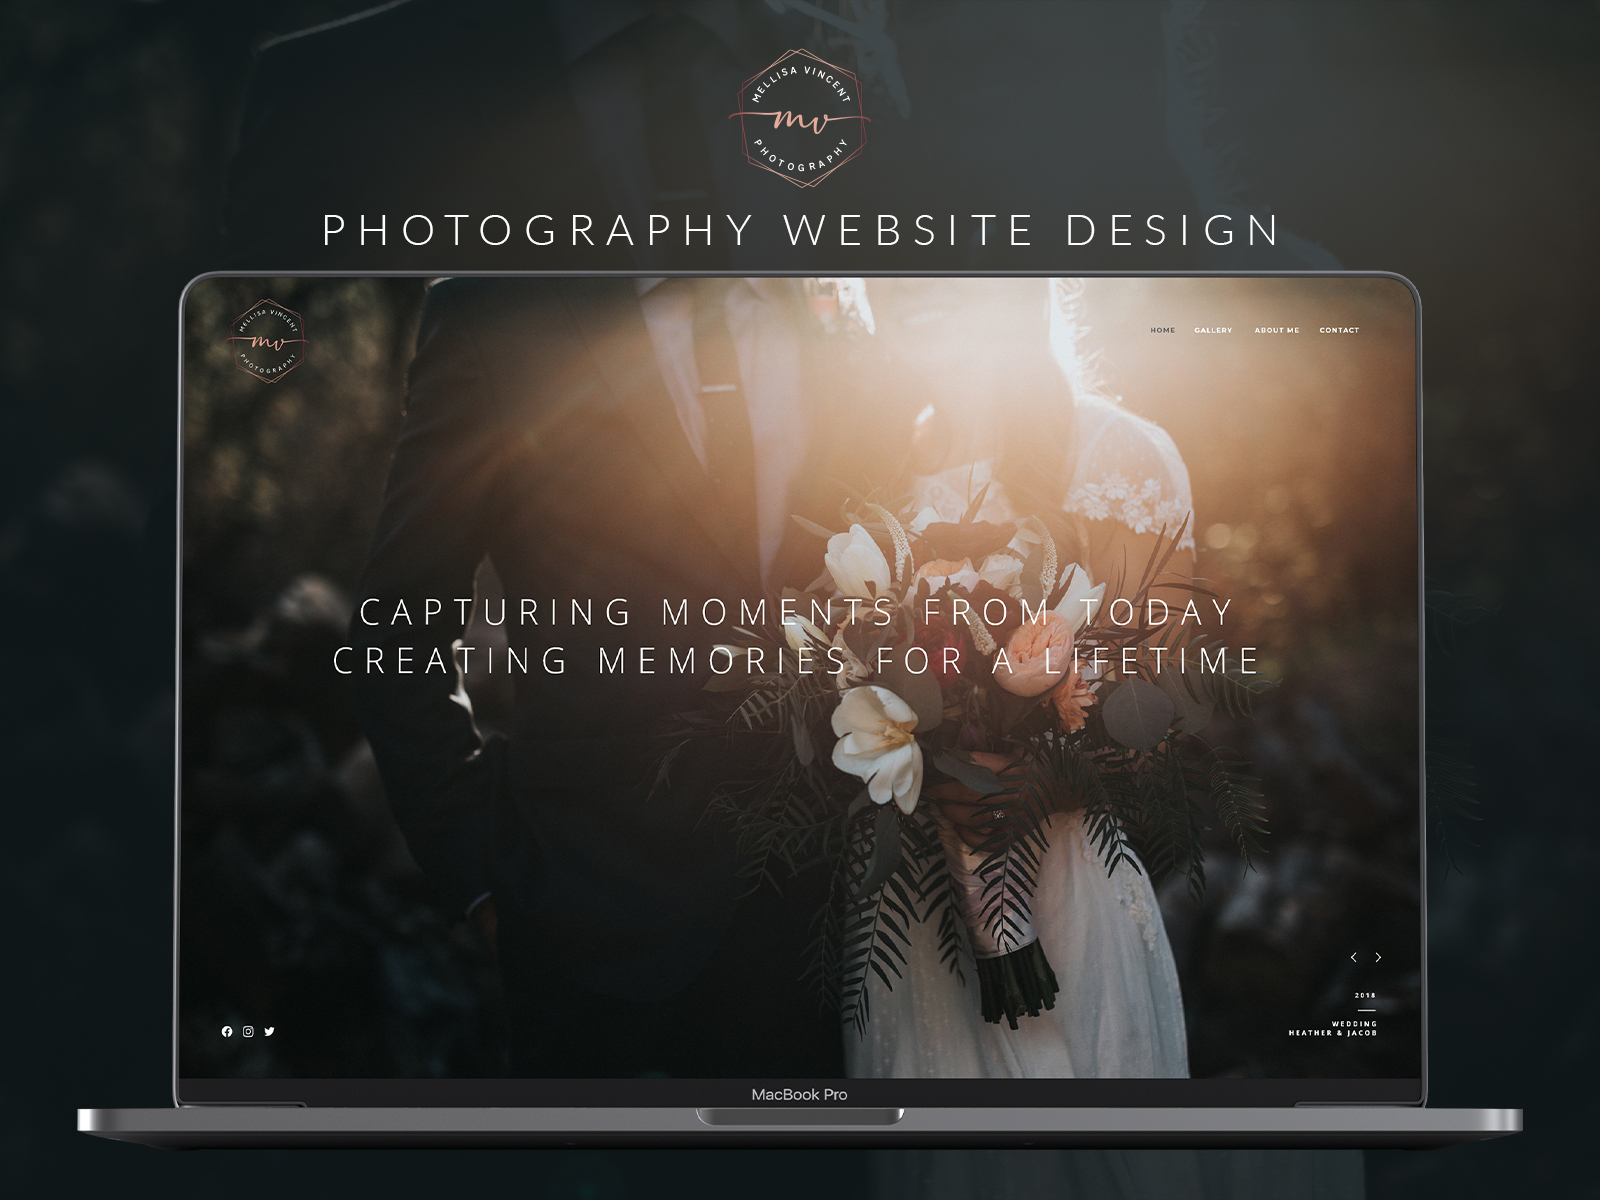 Photography Website Design By Steven Francis On Dribbble